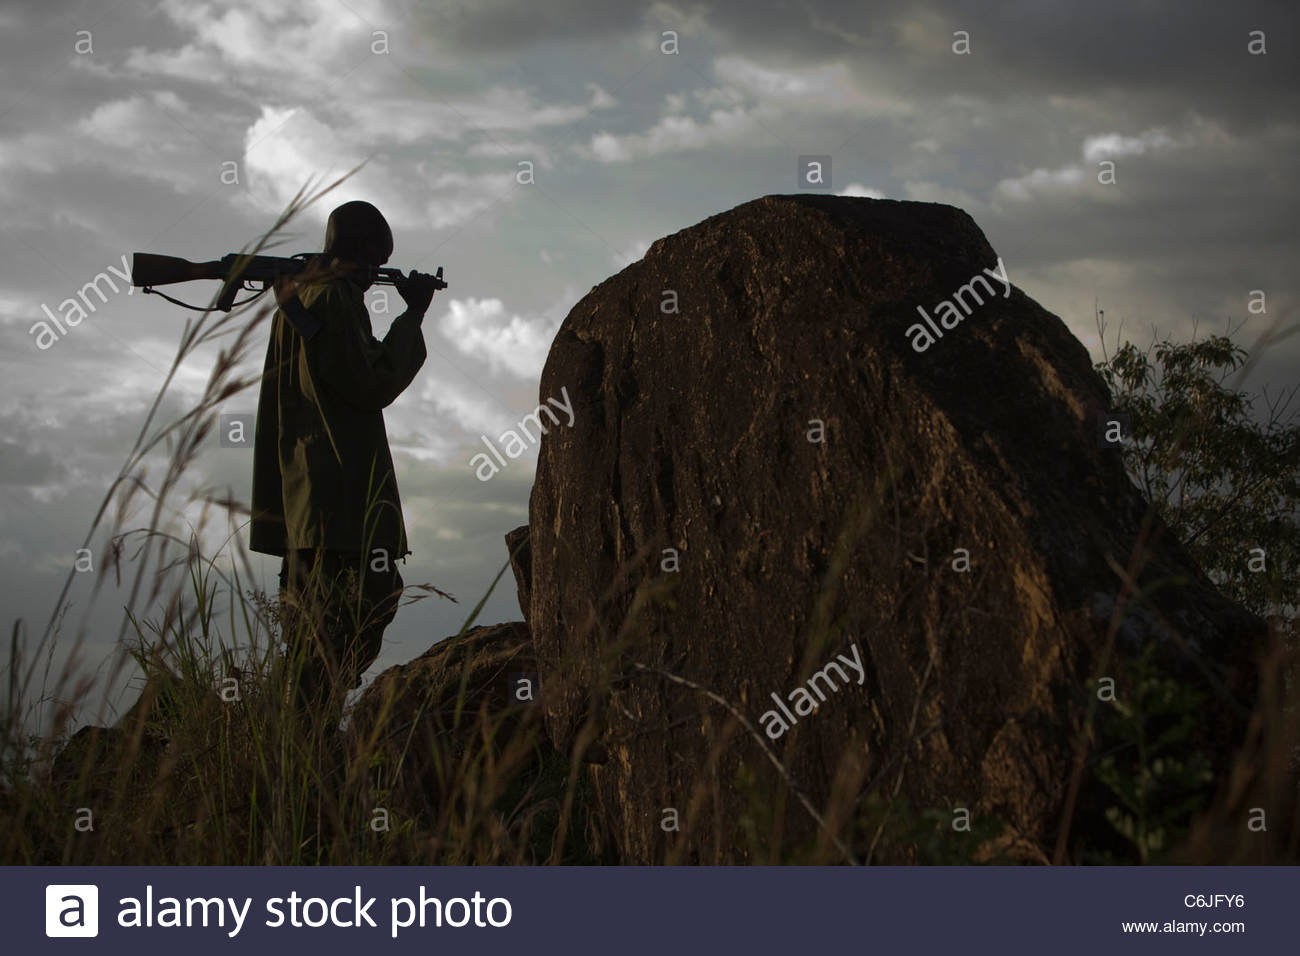 Man with a rifle over his shoulder standing under a cloudy sky - Stock Image